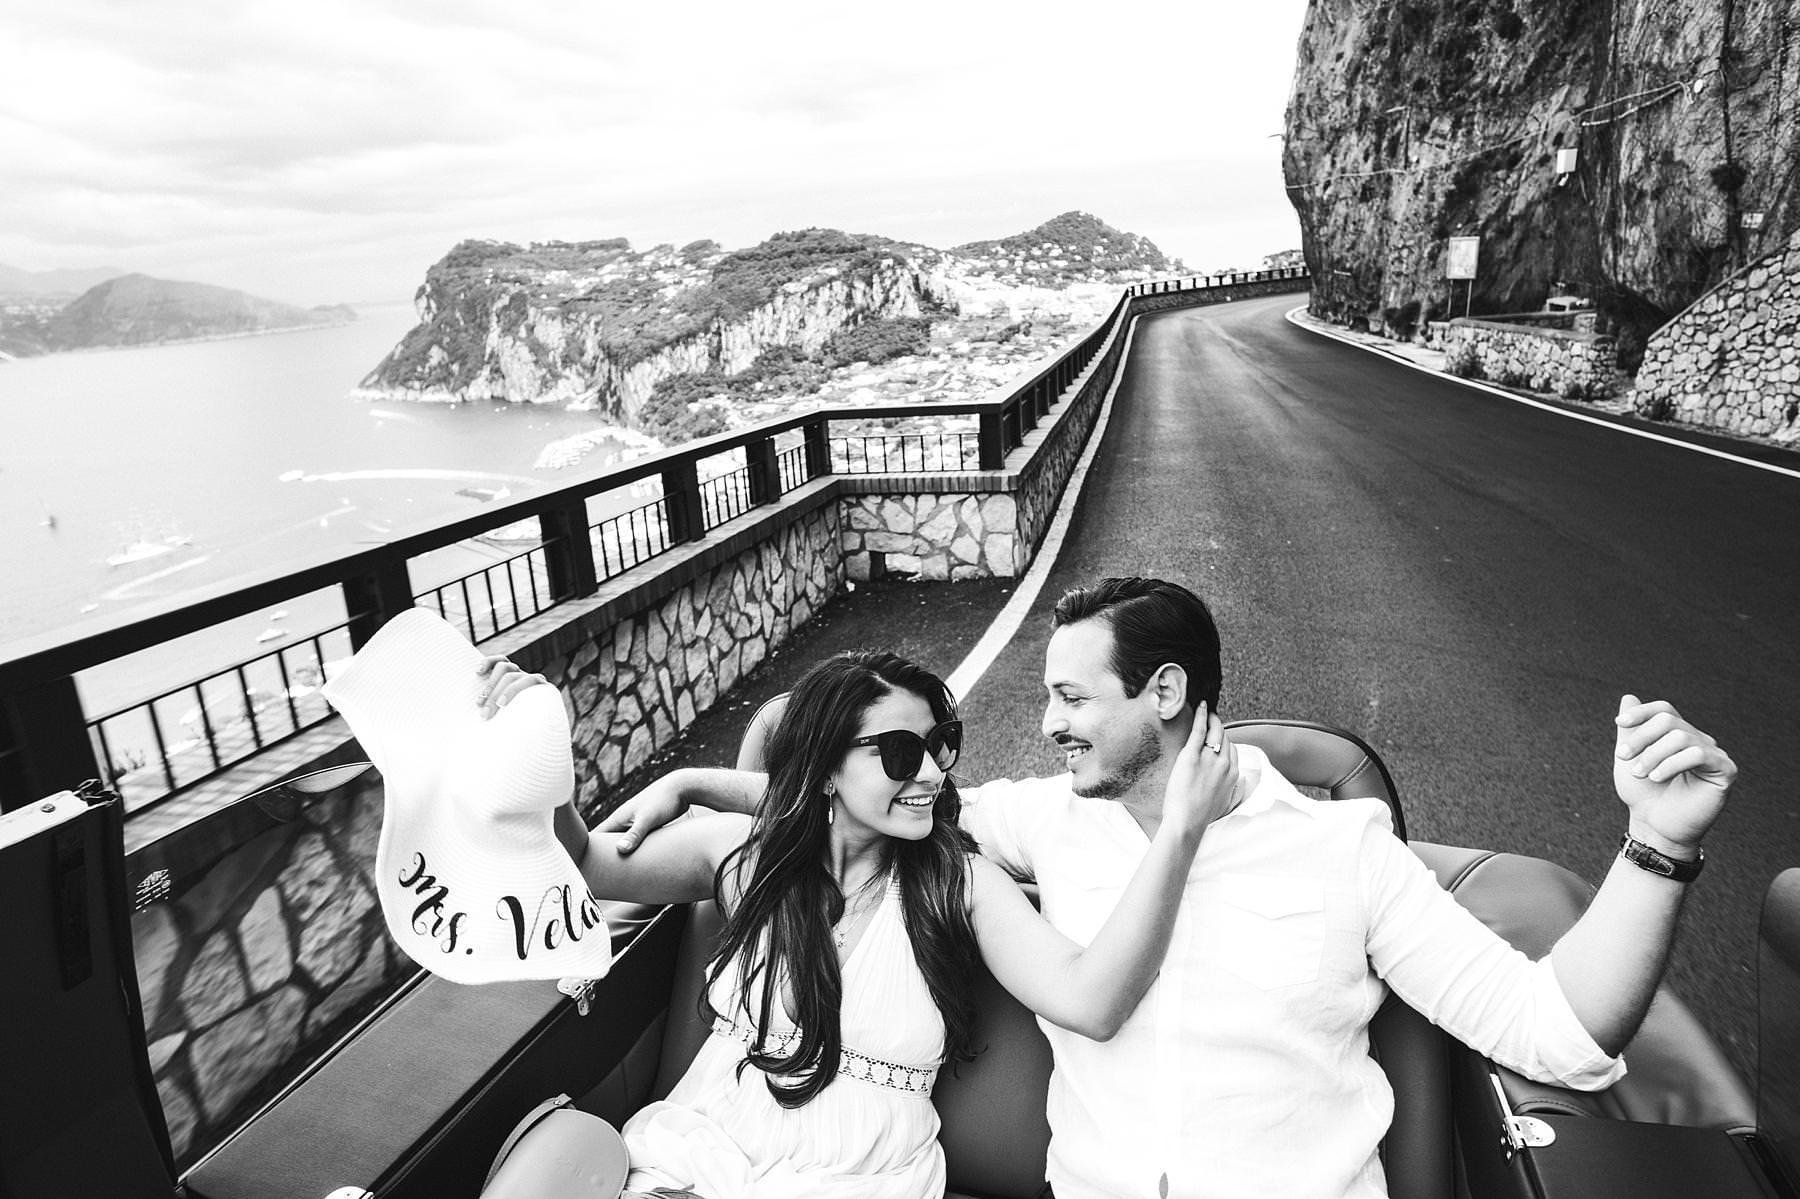 Exciting engagement pre-wedding photo tour in Capri with a private car